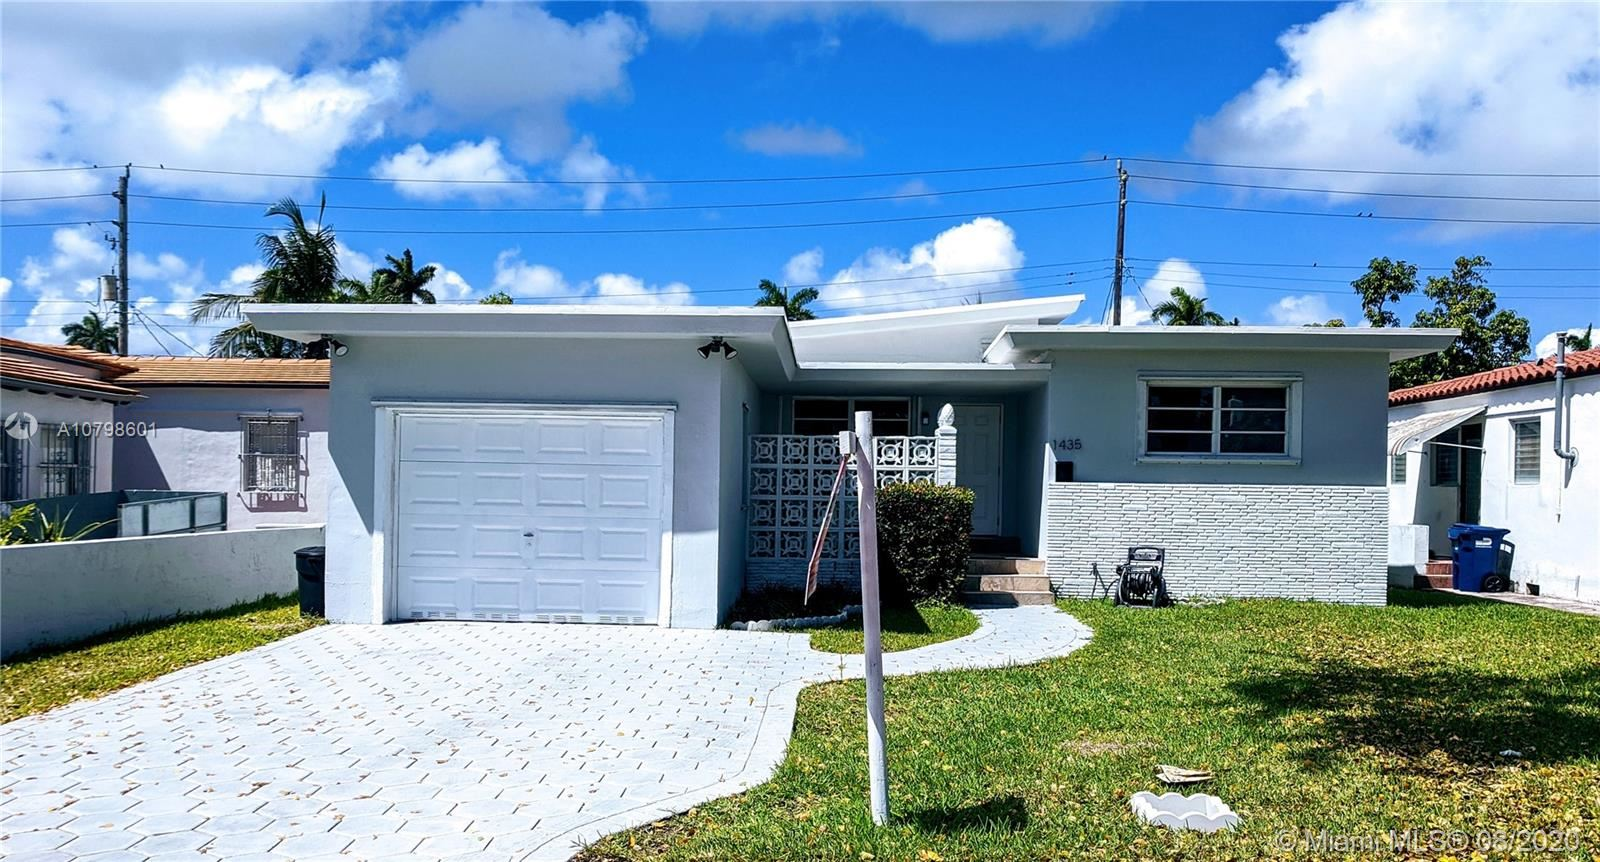 1435 Normandy Dr, Miami Beach, FL 33141 - #: A10798601